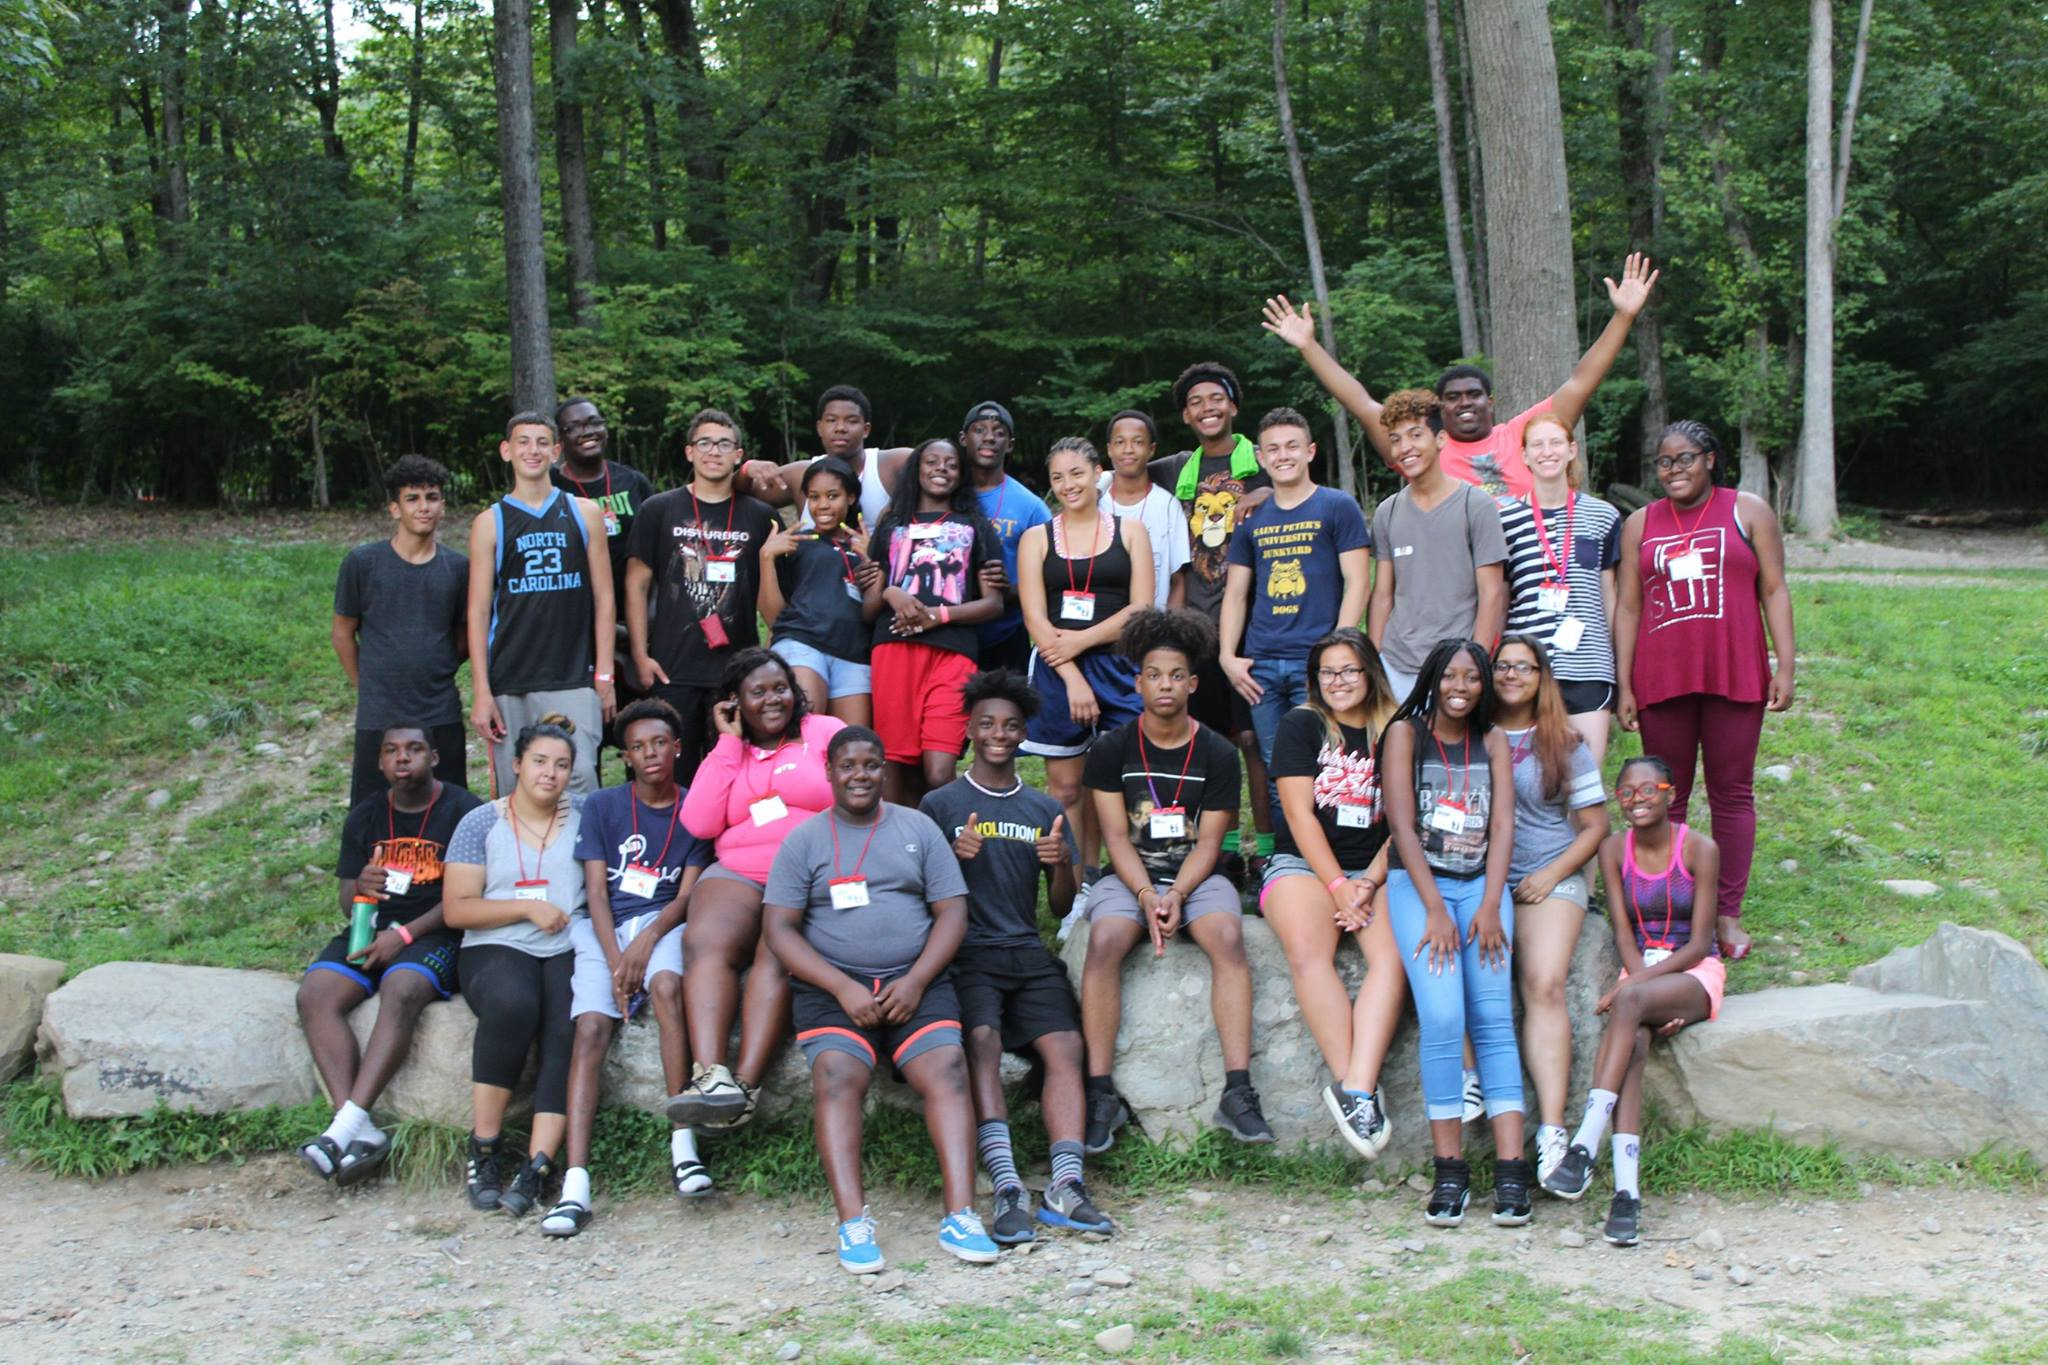 Students from Jersey City at the 2017 LMTI Summer Leadership Conference at Camp Mason in Hardwick, NJ.